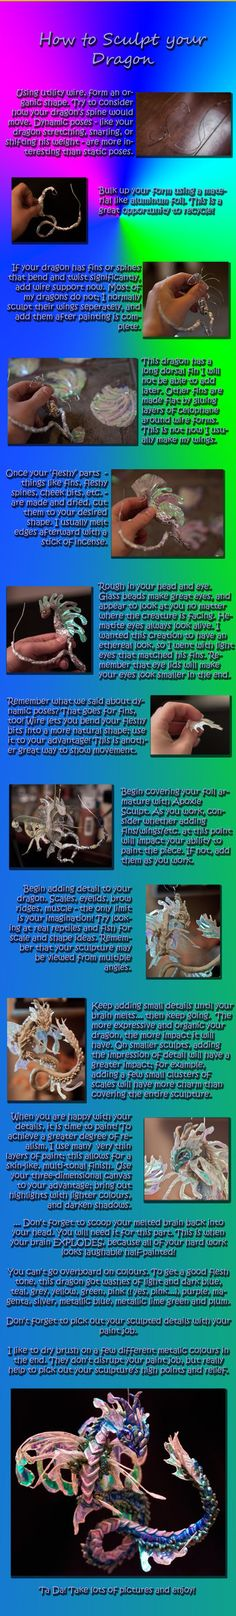 Dragon Sculpture Tutorial by ~QuinapalusTheFool on deviantART